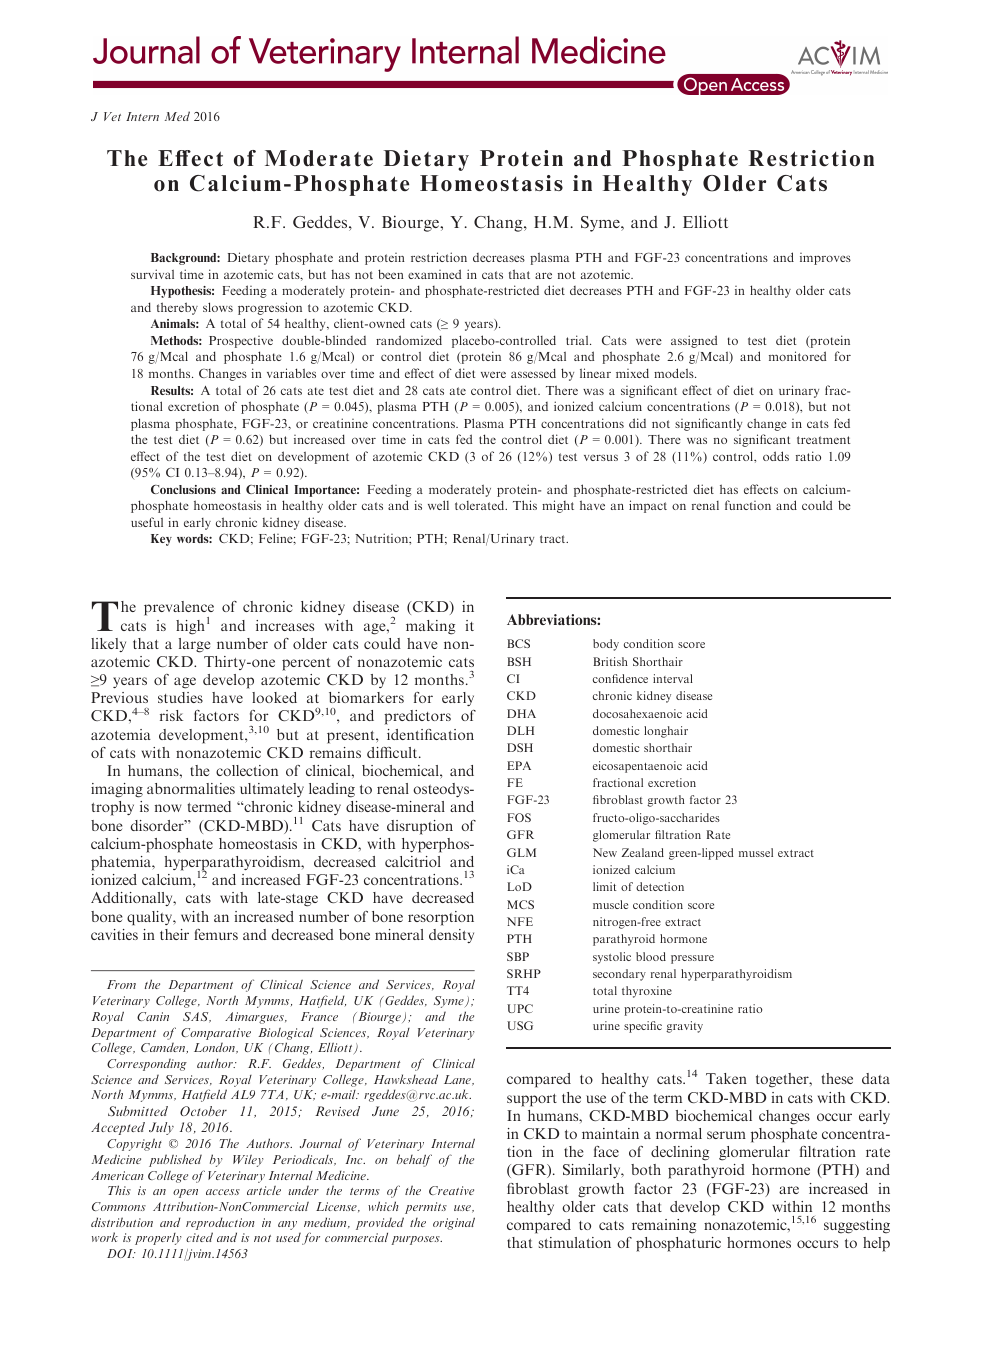 The Effect of Moderate Dietary Protein and Phosphate